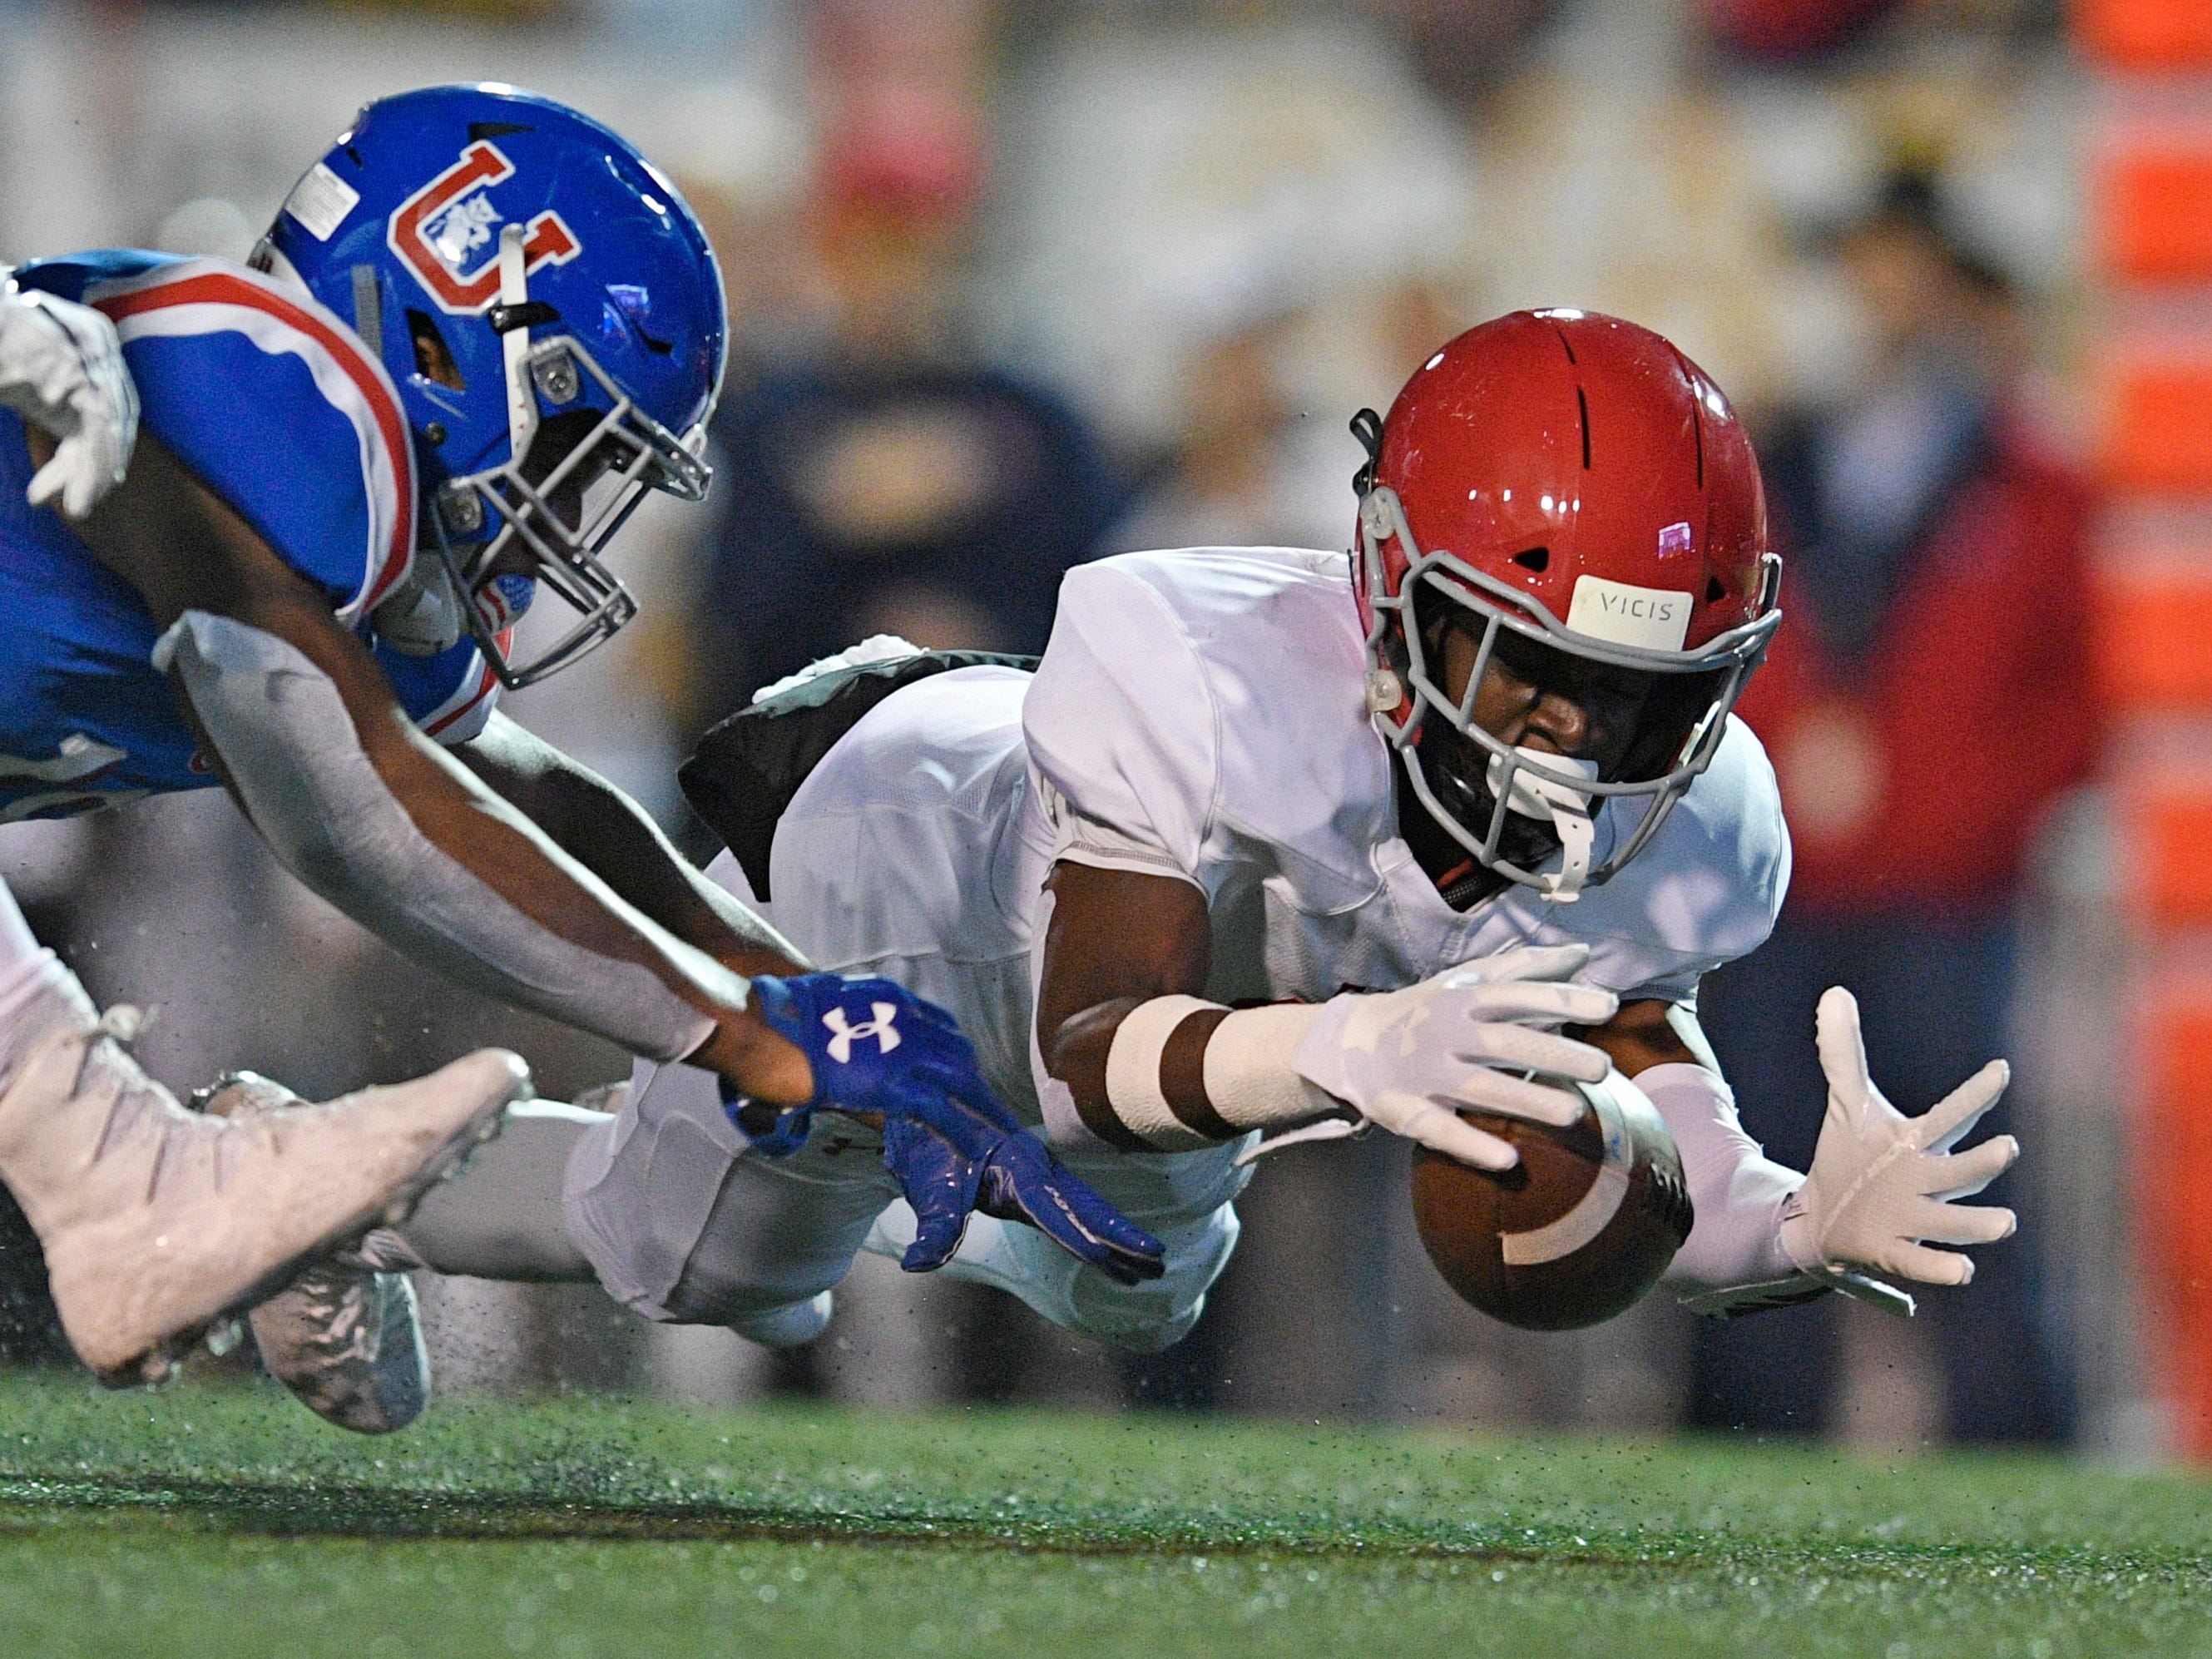 Brentwood Academy defensive back Amir Annoor (17) recovers a Memphis Univ. School wide receiver Maurice Hampton (18) fumble in the first half at the Division II-AAA BlueCross Bowl state championship at Tennessee Tech's Tucker Stadium in Cookeville, Tenn., on Friday, Nov. 30, 2018.